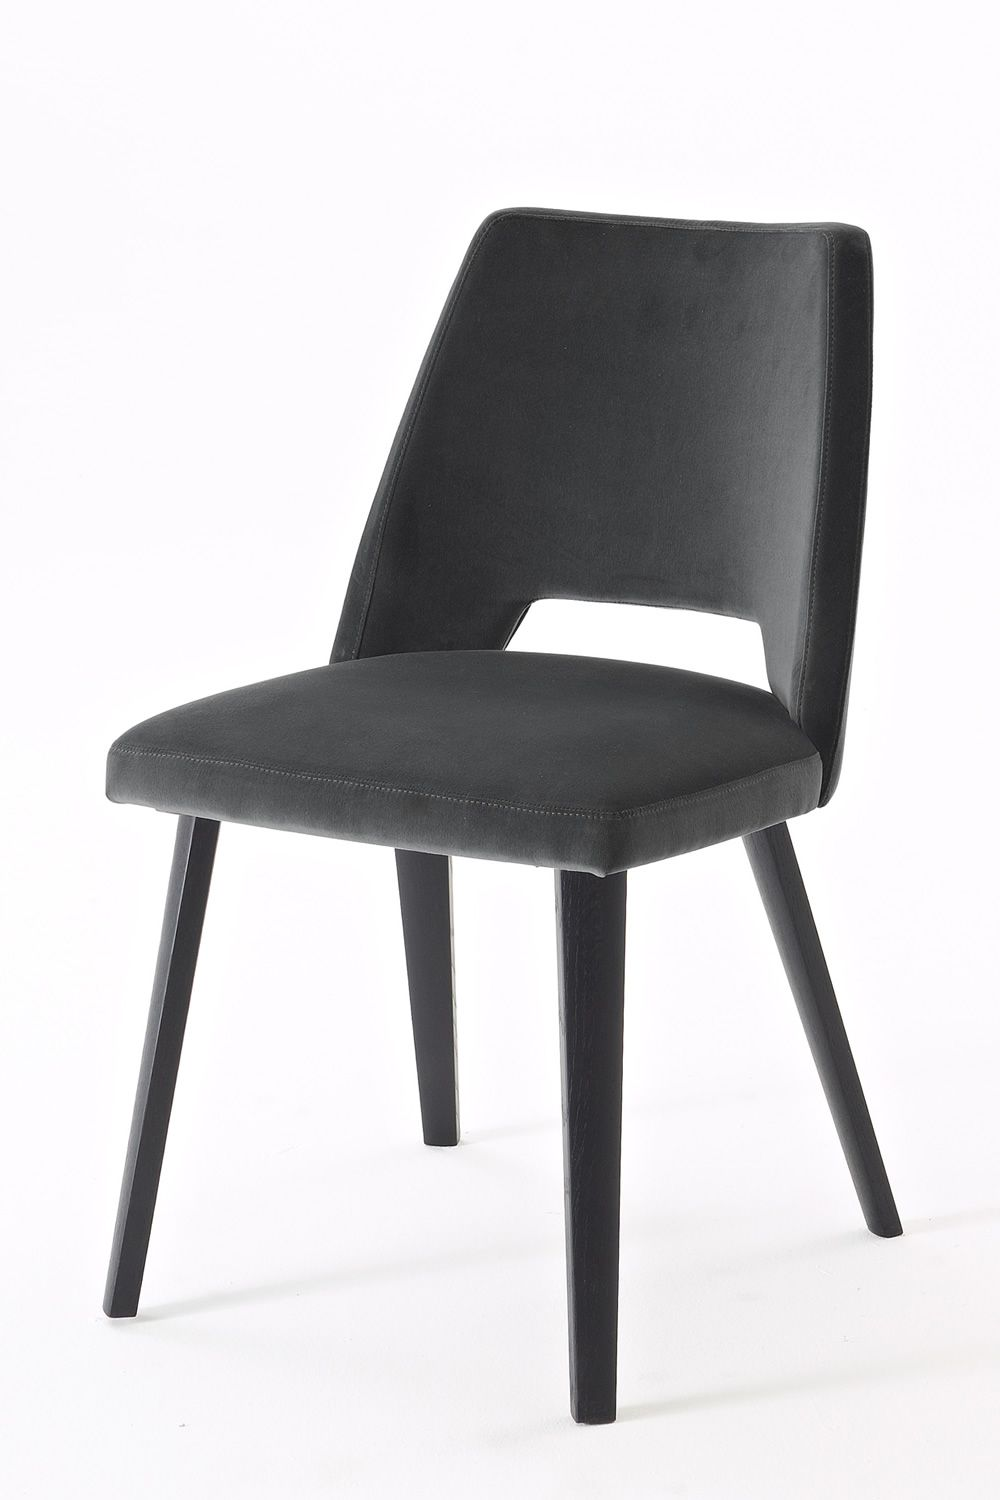 Grace colico design stuhl aus eichenholz in schwarz for Stuhl design outlet